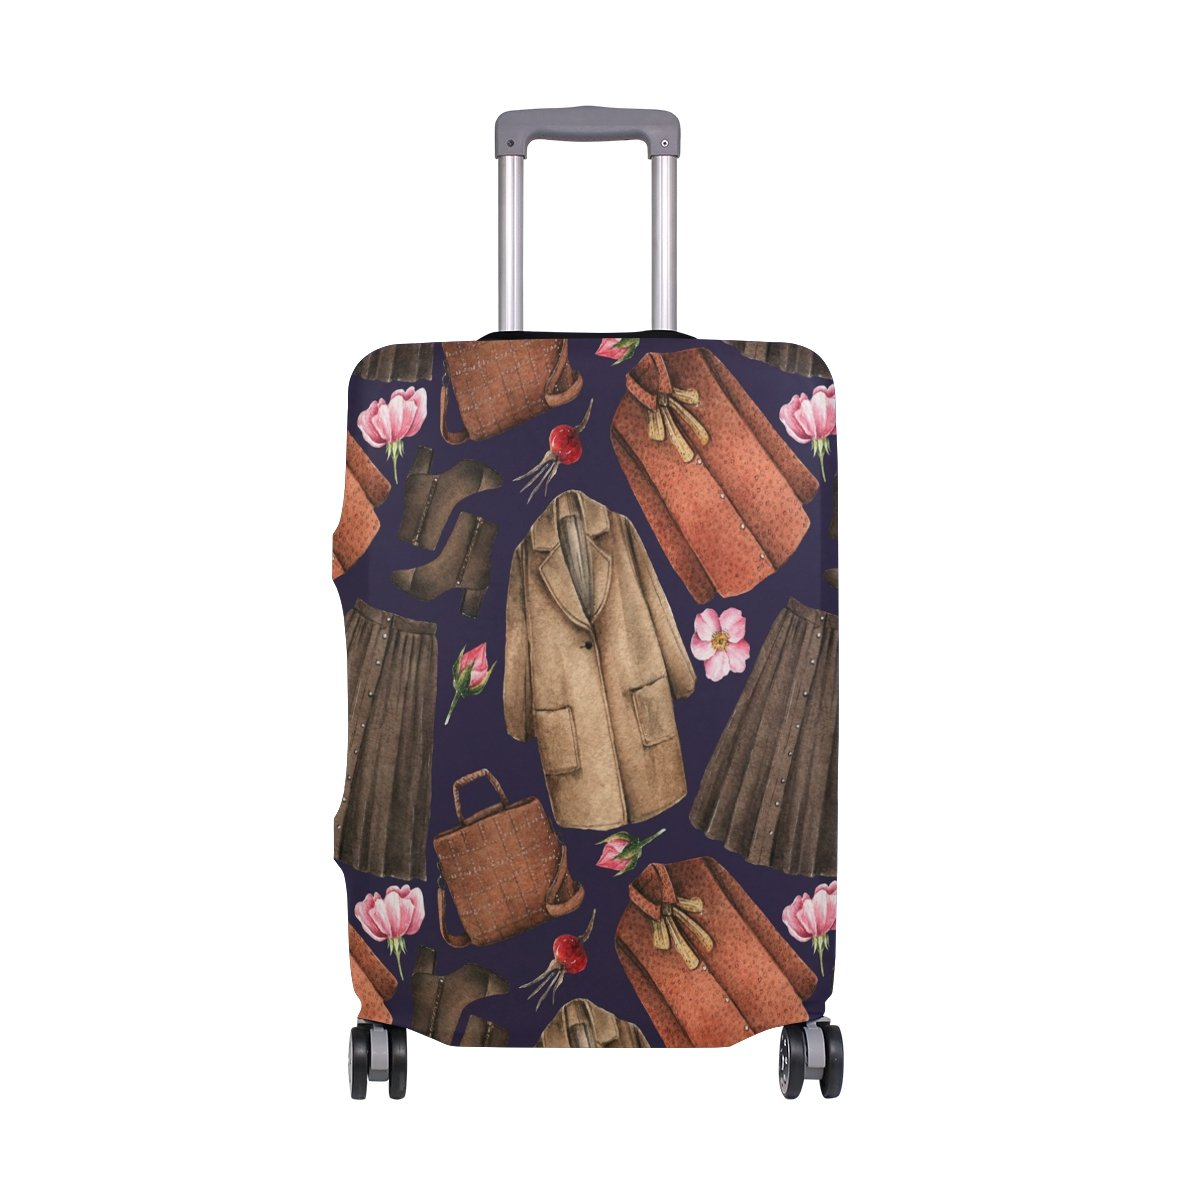 Elastic Travel Luggage Cover Watercolor Coat Skirt Suitcase Protector for 18-20 Inch Luggage by My Little Nest (Image #1)